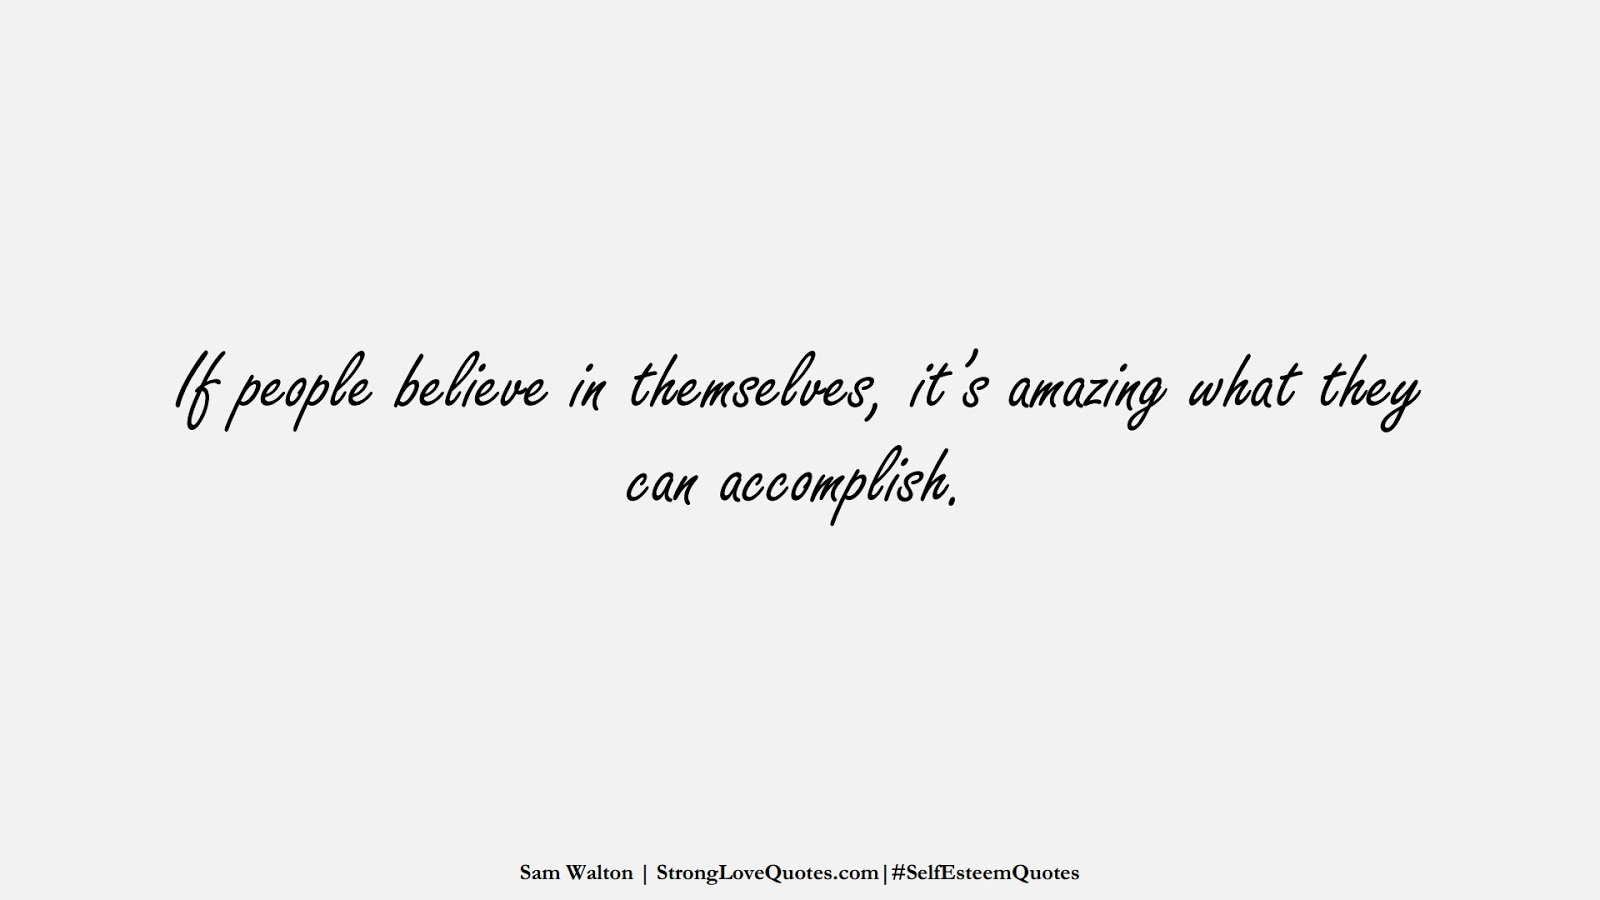 If people believe in themselves, it's amazing what they can accomplish. (Sam Walton);  #SelfEsteemQuotes